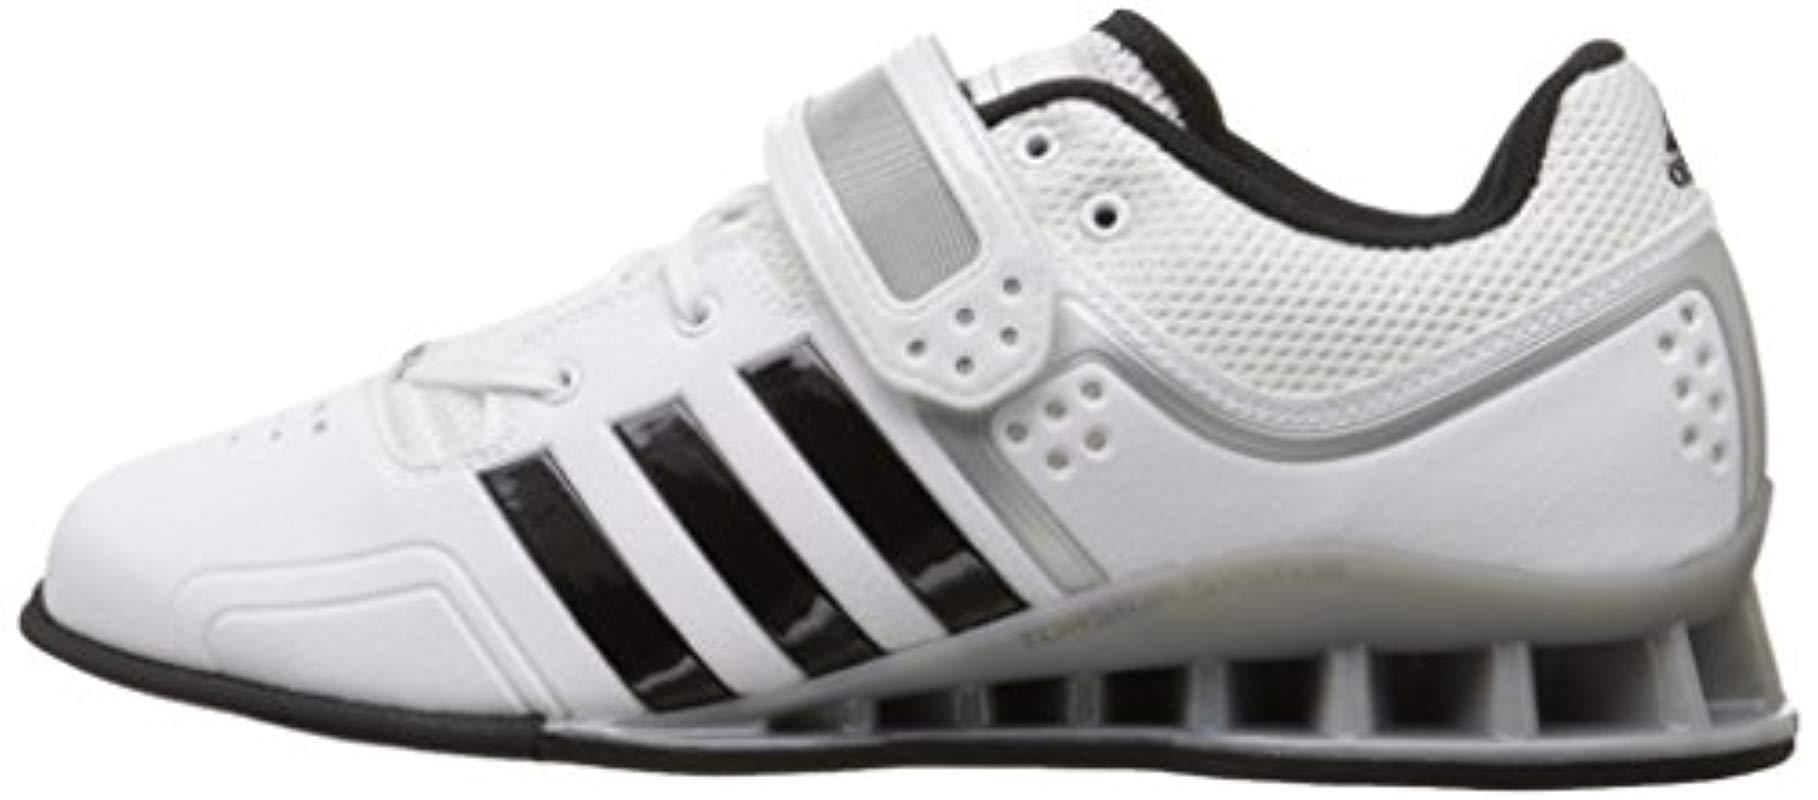 adidas men's adipower weightlift shoes